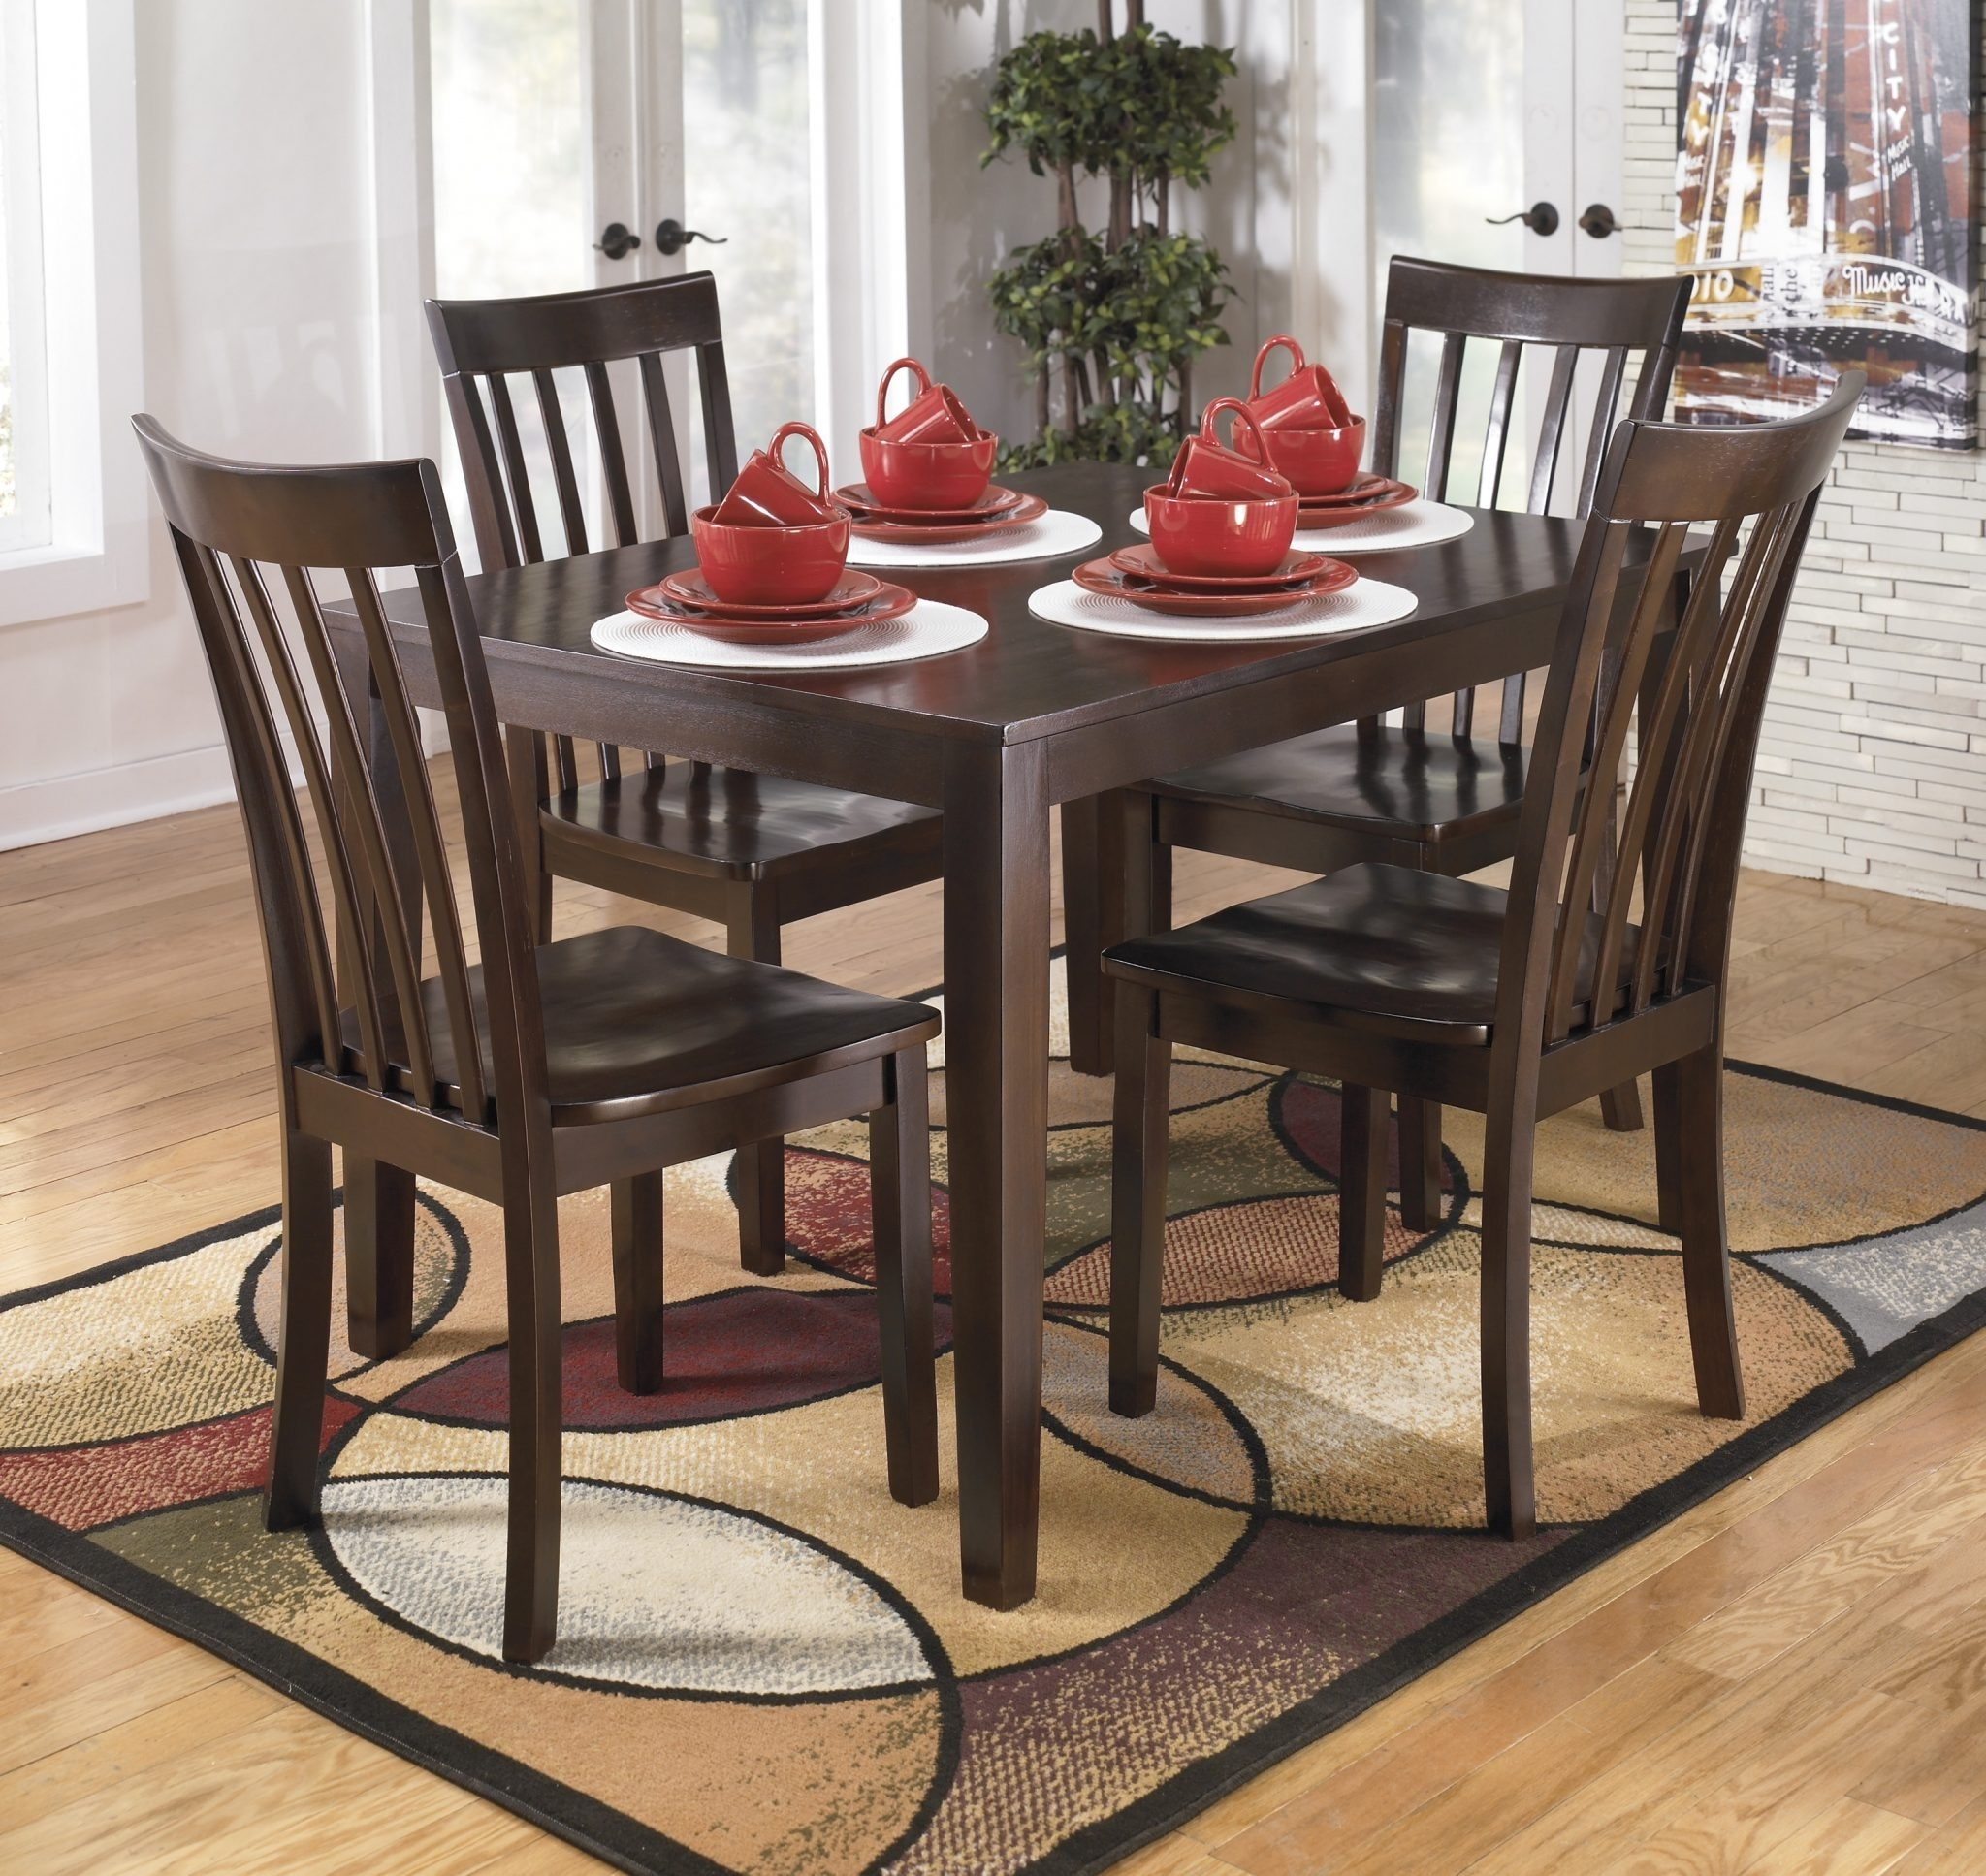 Ashley D258 225 Hyland Table And 4 Chairs | Best Furniture Mentor Oh With Regard To Most Up To Date Hyland 5 Piece Counter Sets With Bench (View 6 of 20)